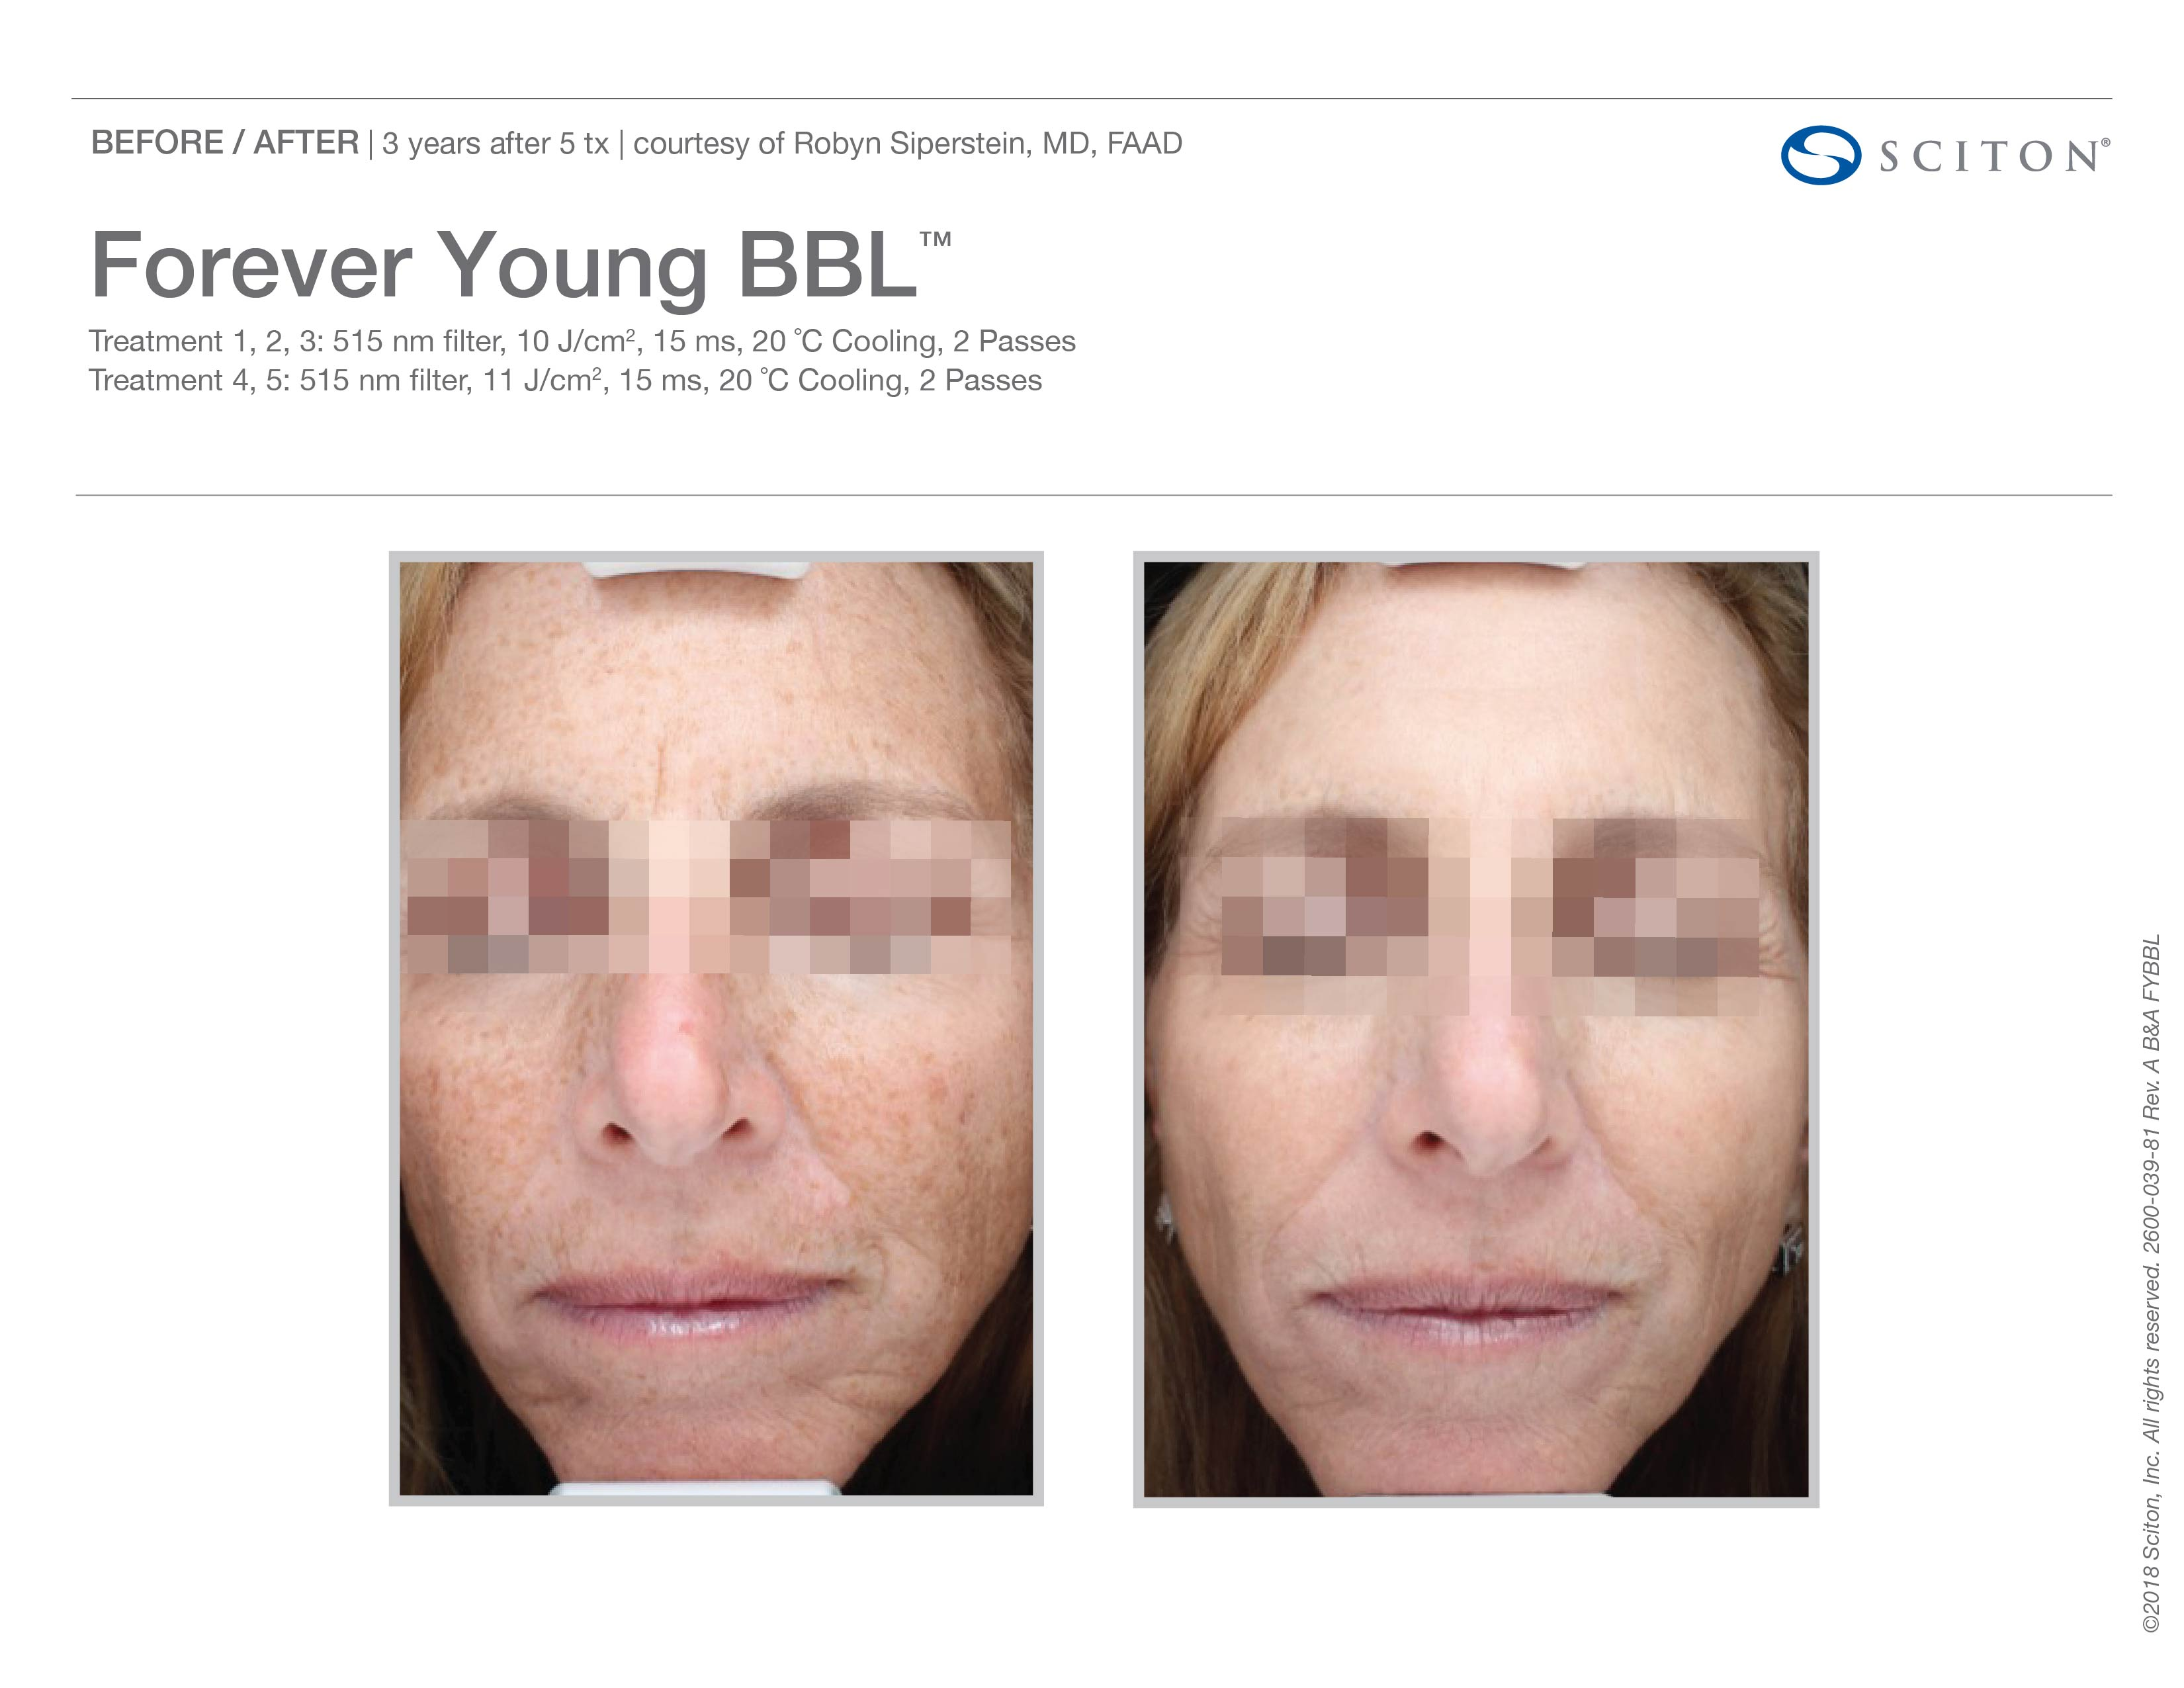 FYBBL-before-after-photo-2